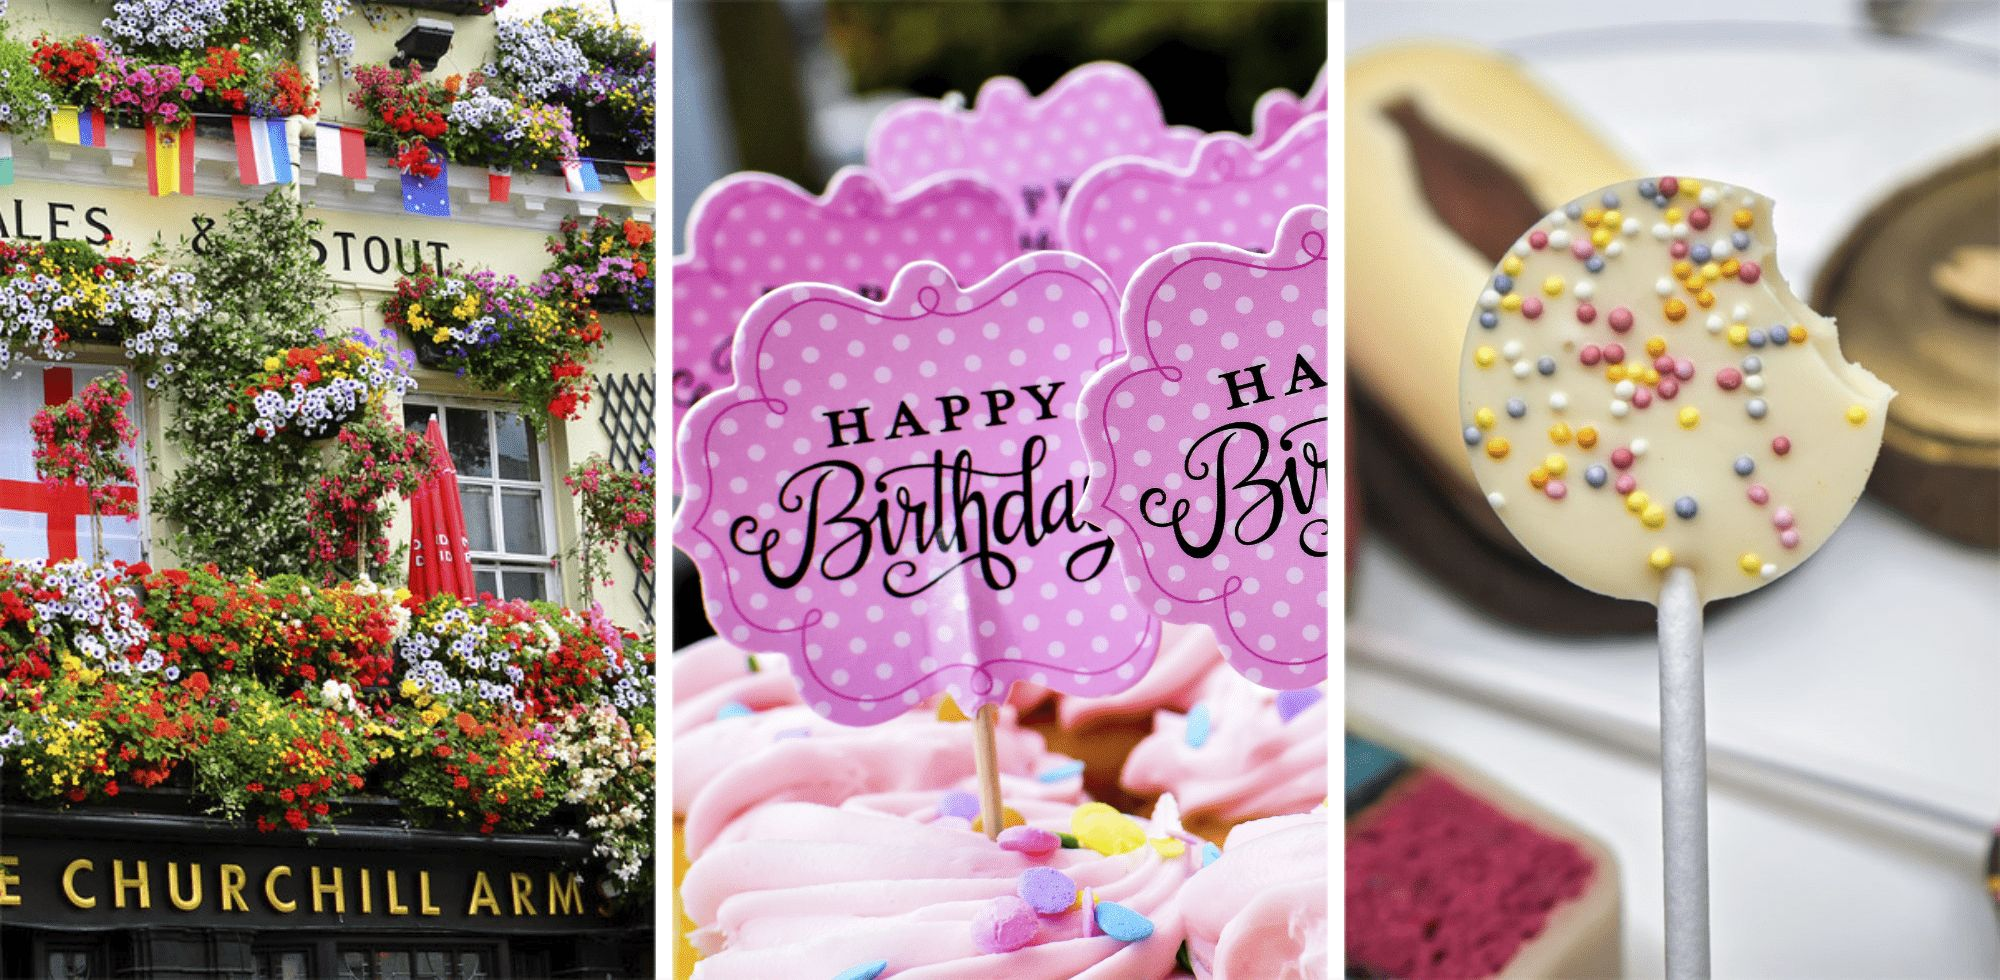 (Exactly) How to Spend Your Birthday in London: 15+ London Birthday Ideas via @girlsgonelondon